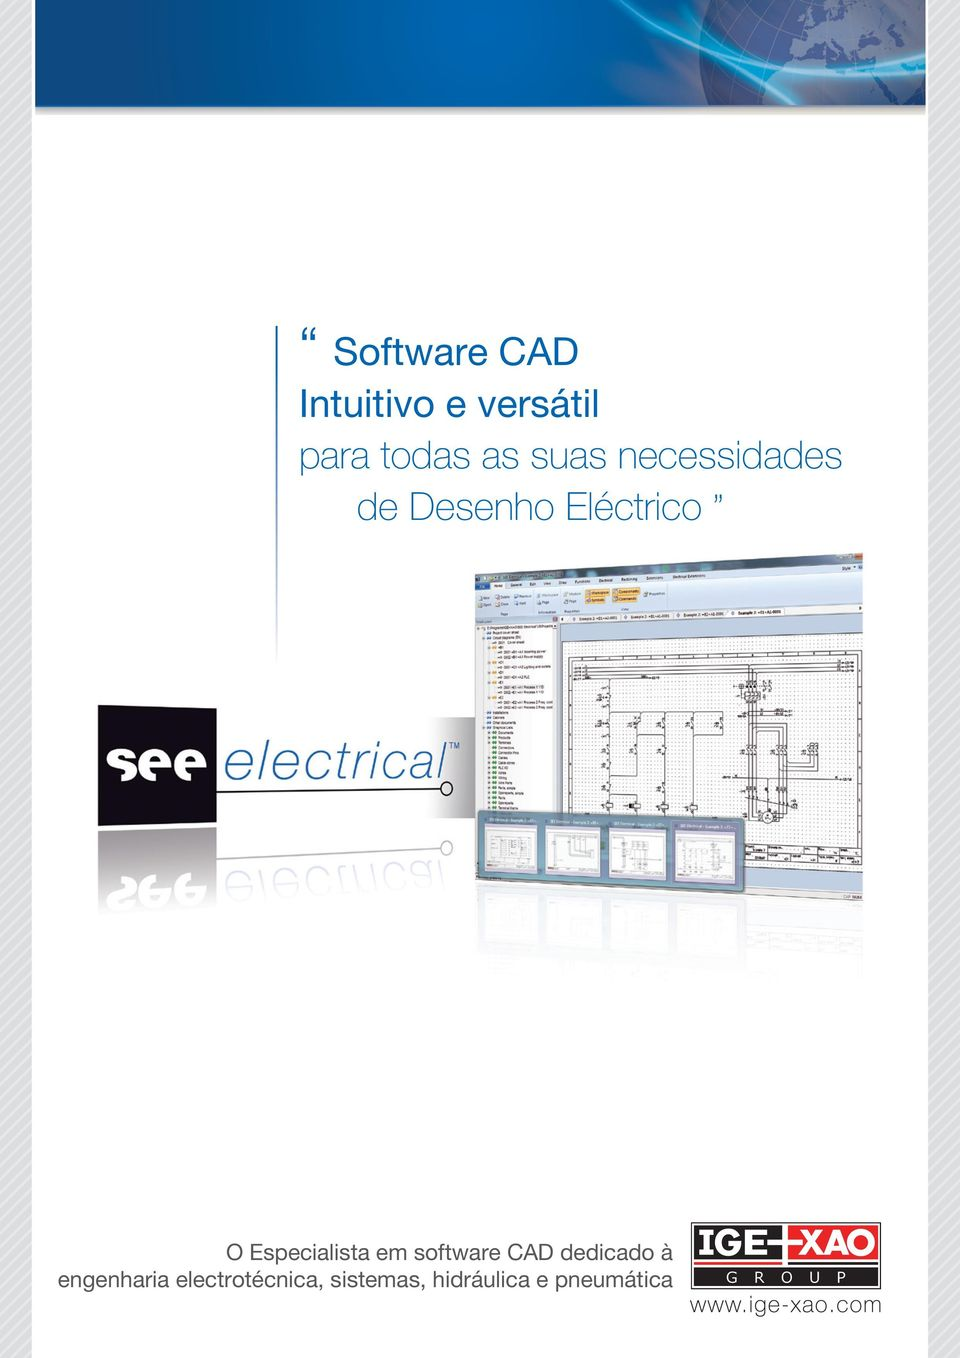 Especialista em software CAD dedicado à